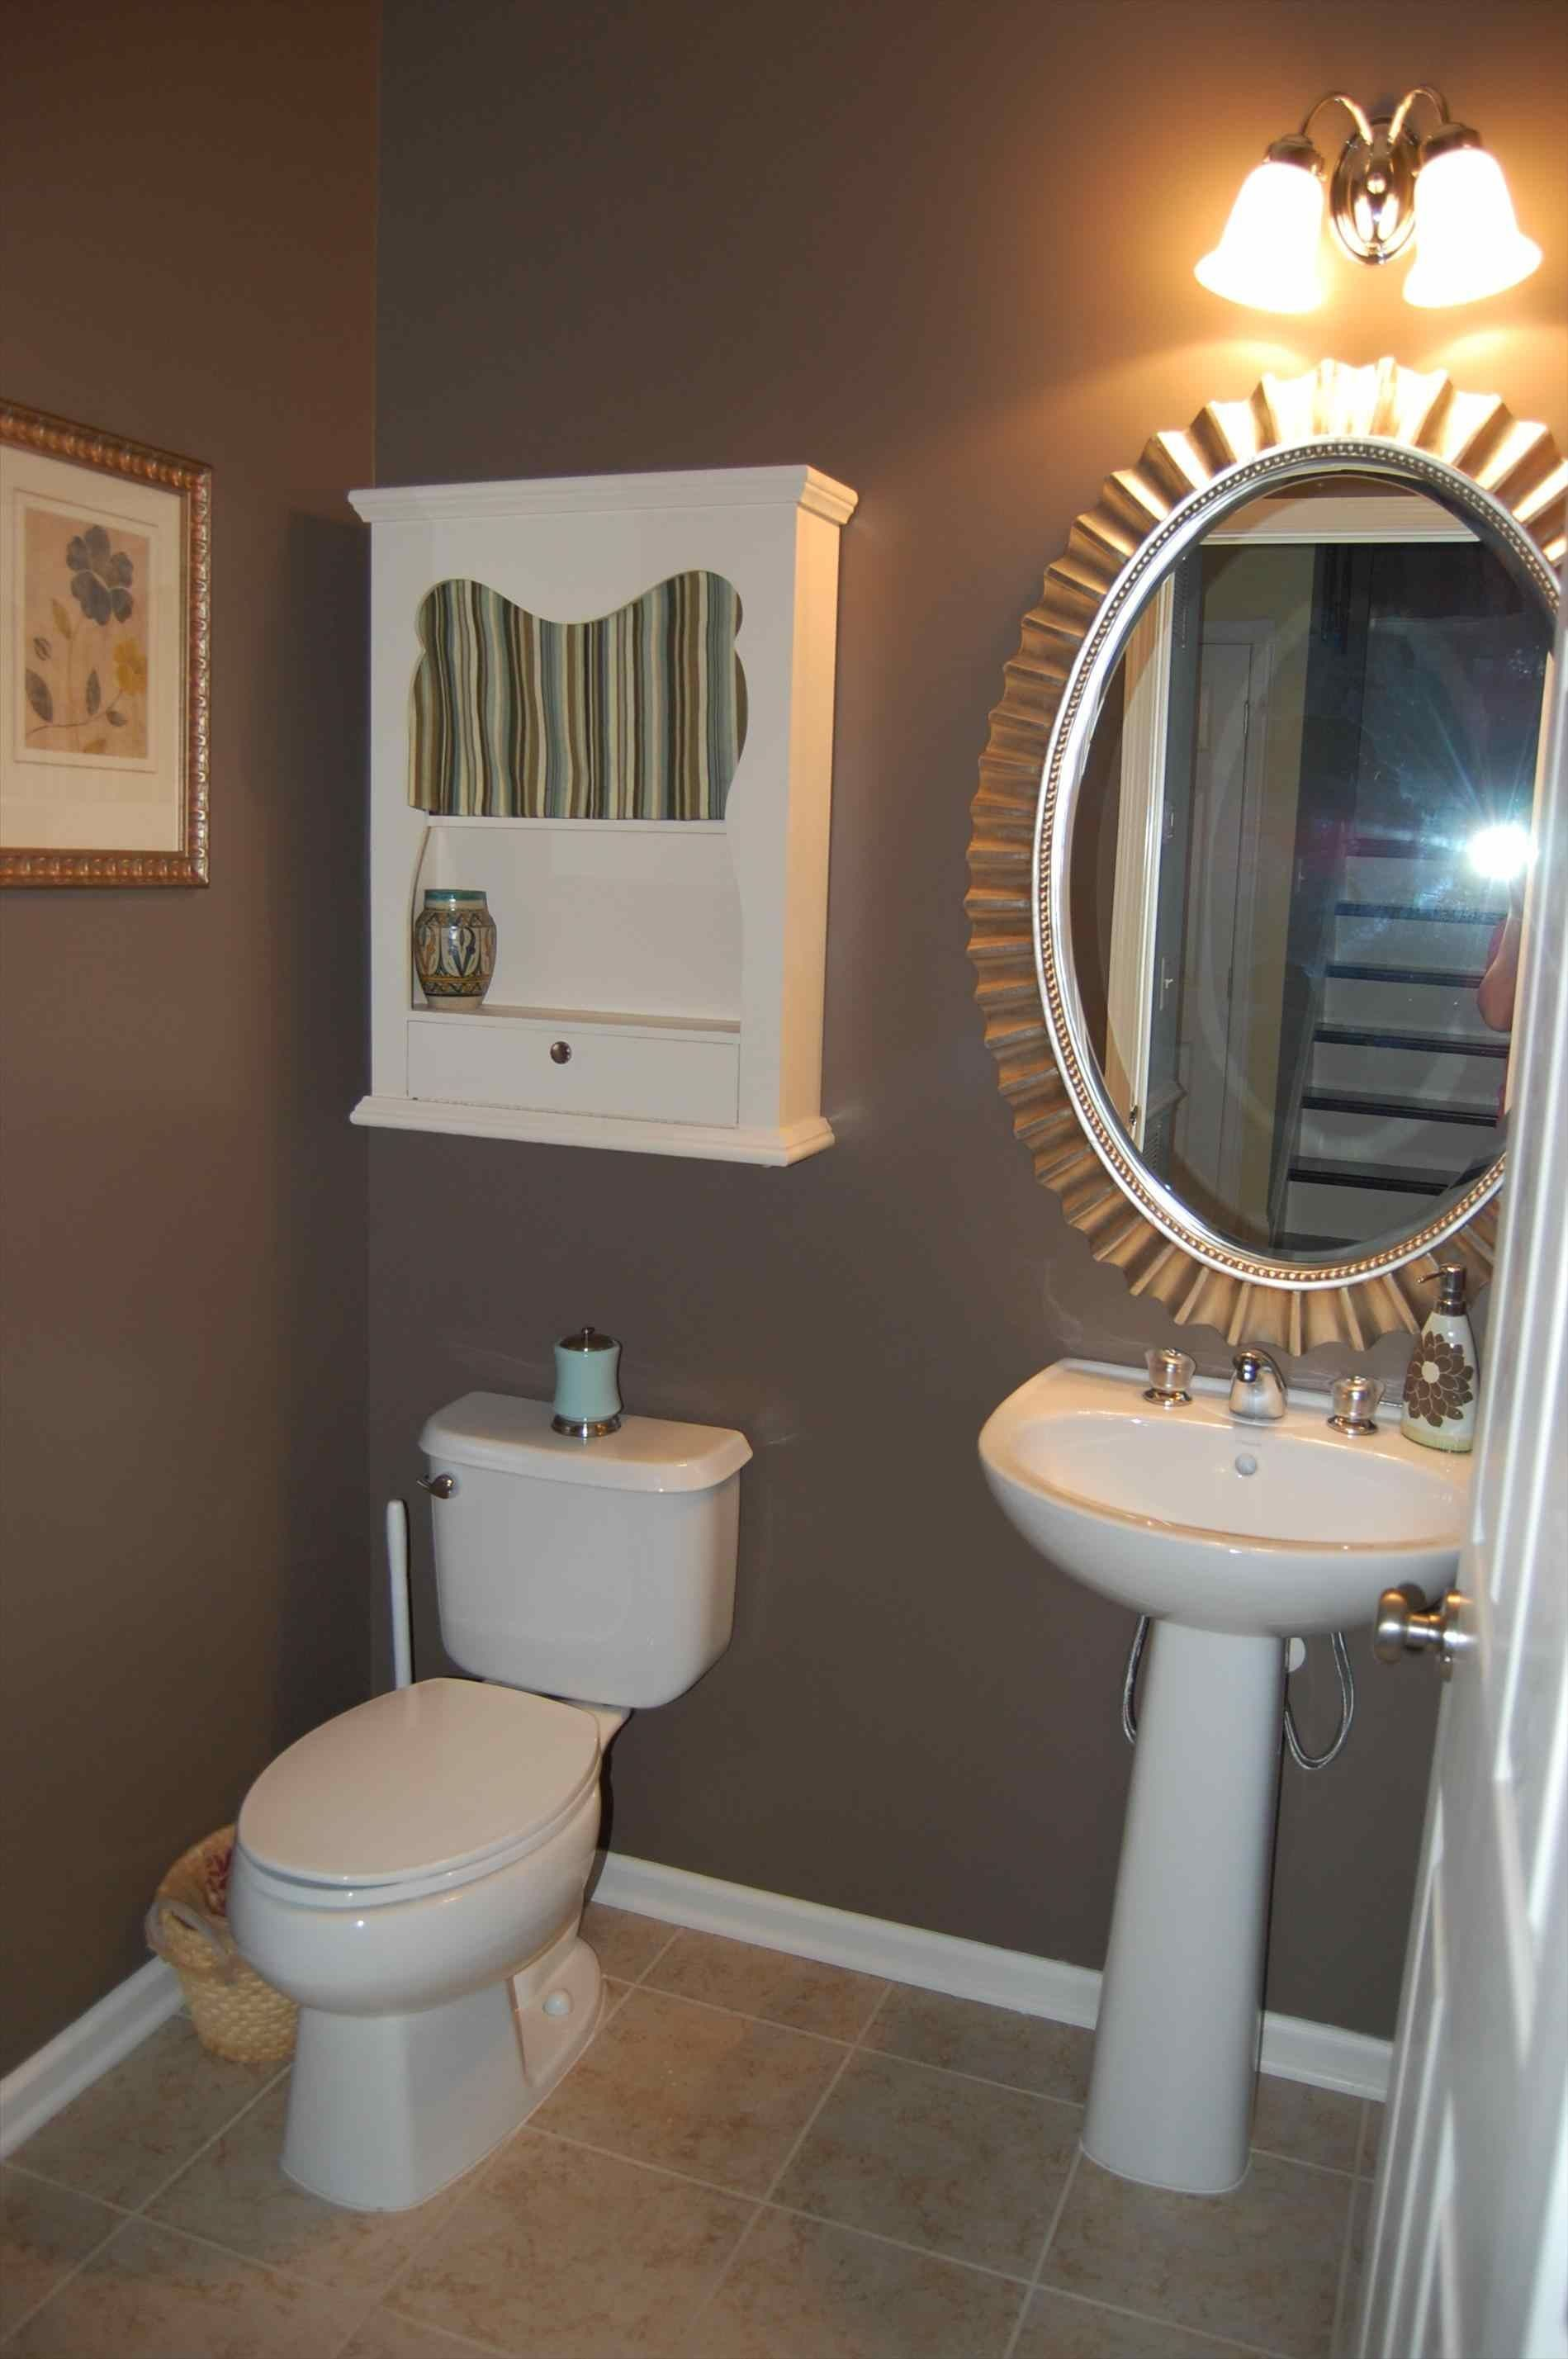 Paint Colors For A Small Bathroom With No Natural Light Small Bathroom Colors Bathroom Wall Colors Bathroom Colors